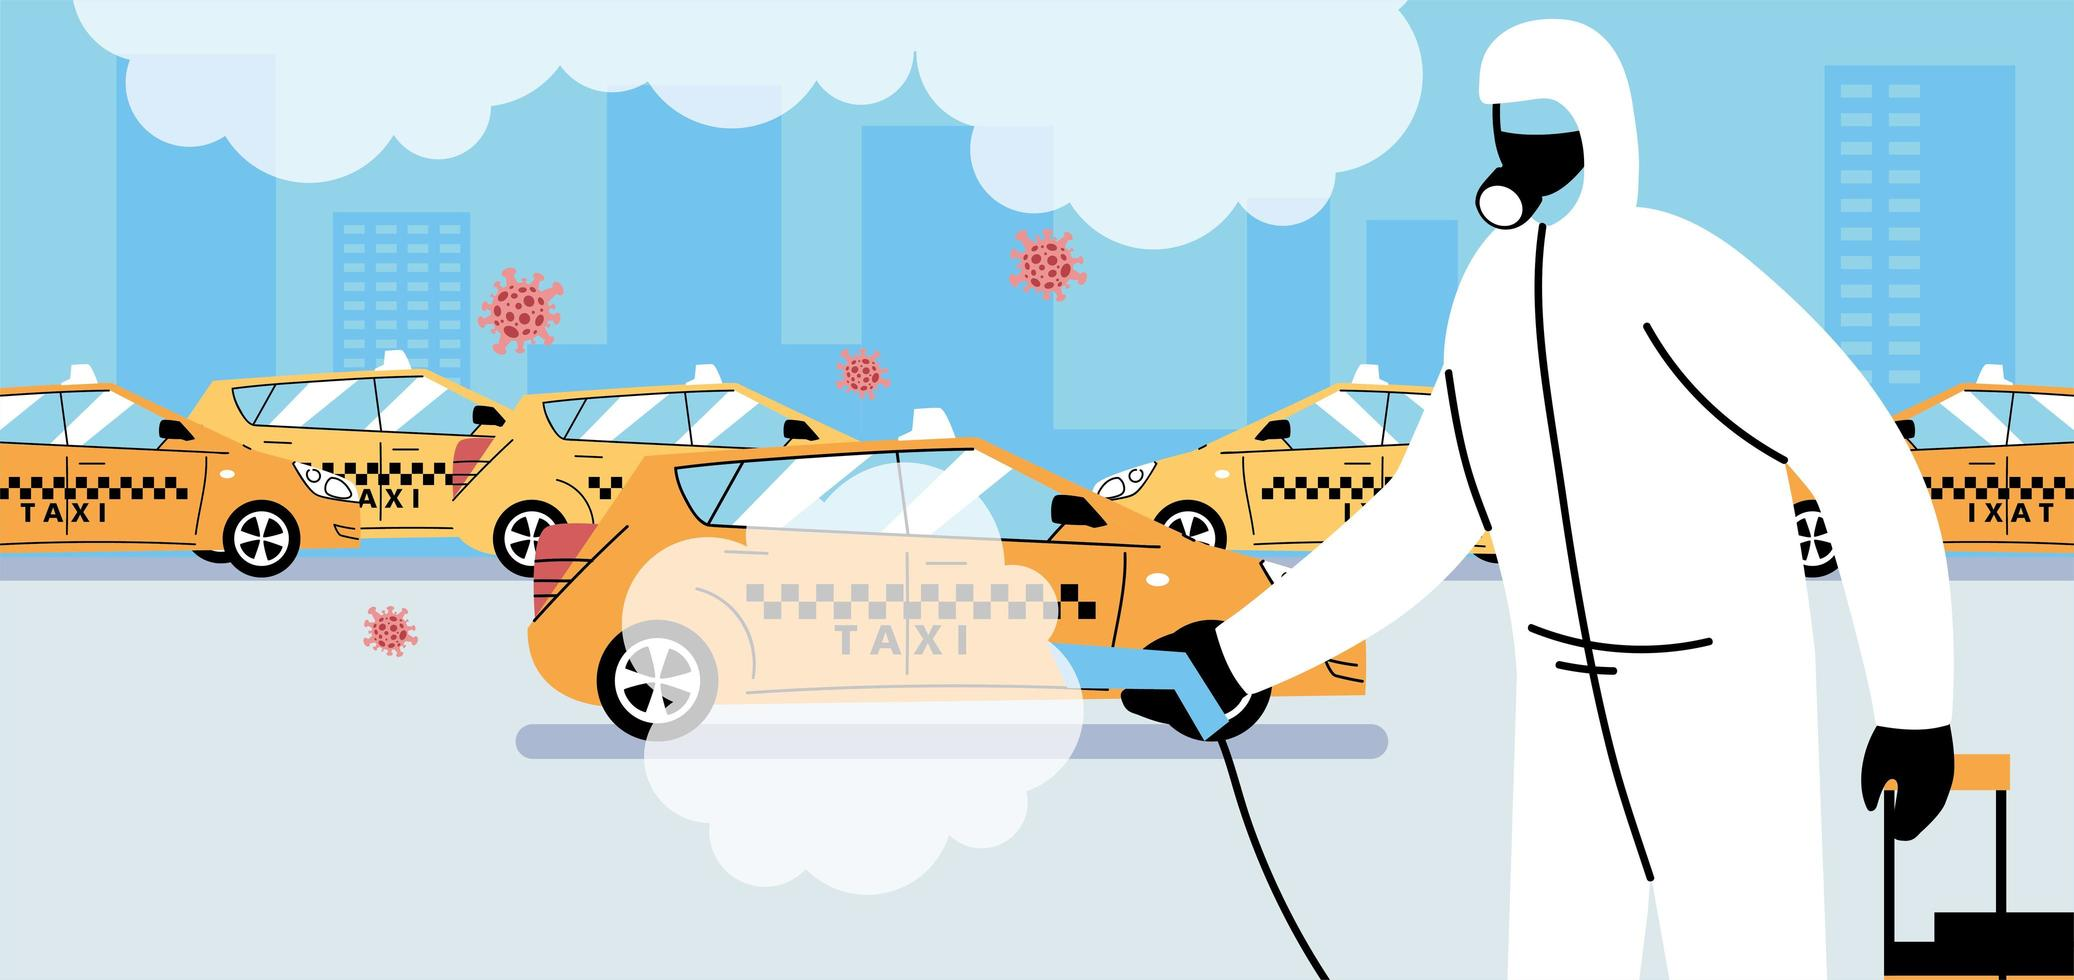 Service taxi disinfection of coronavirus or covid 19 vector